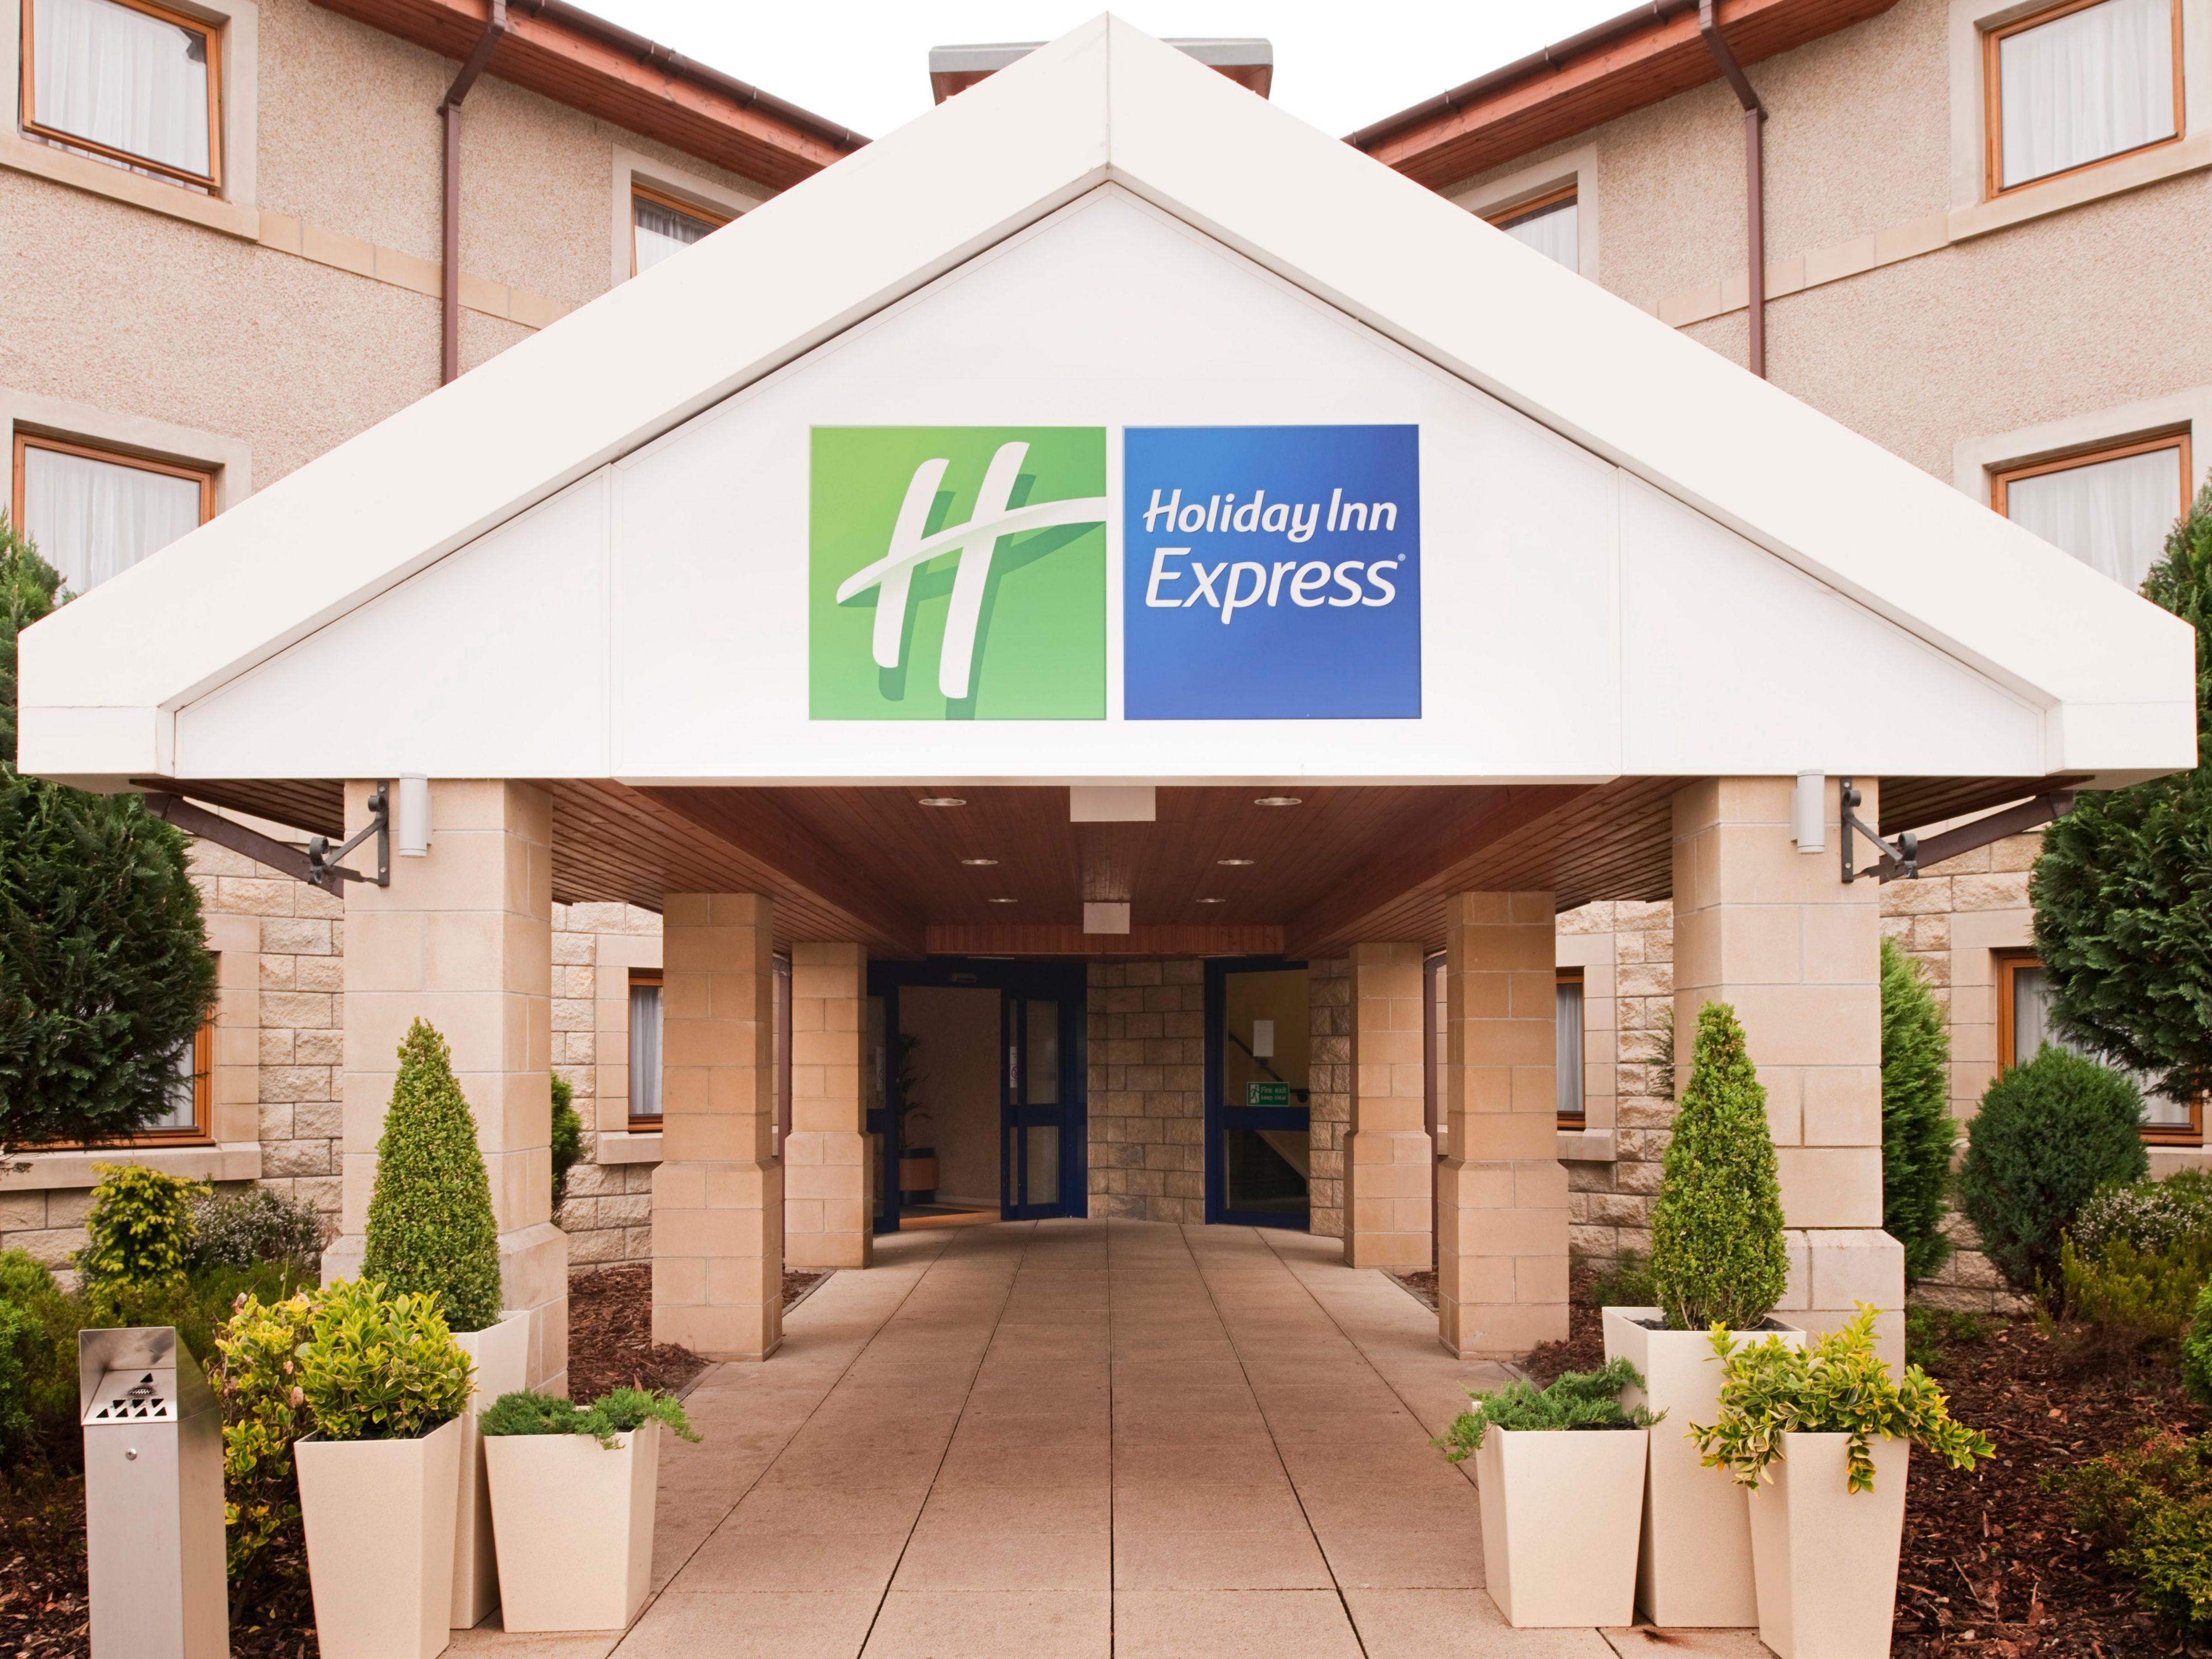 Welcome to the Holiday Inn Express Inverness hotel